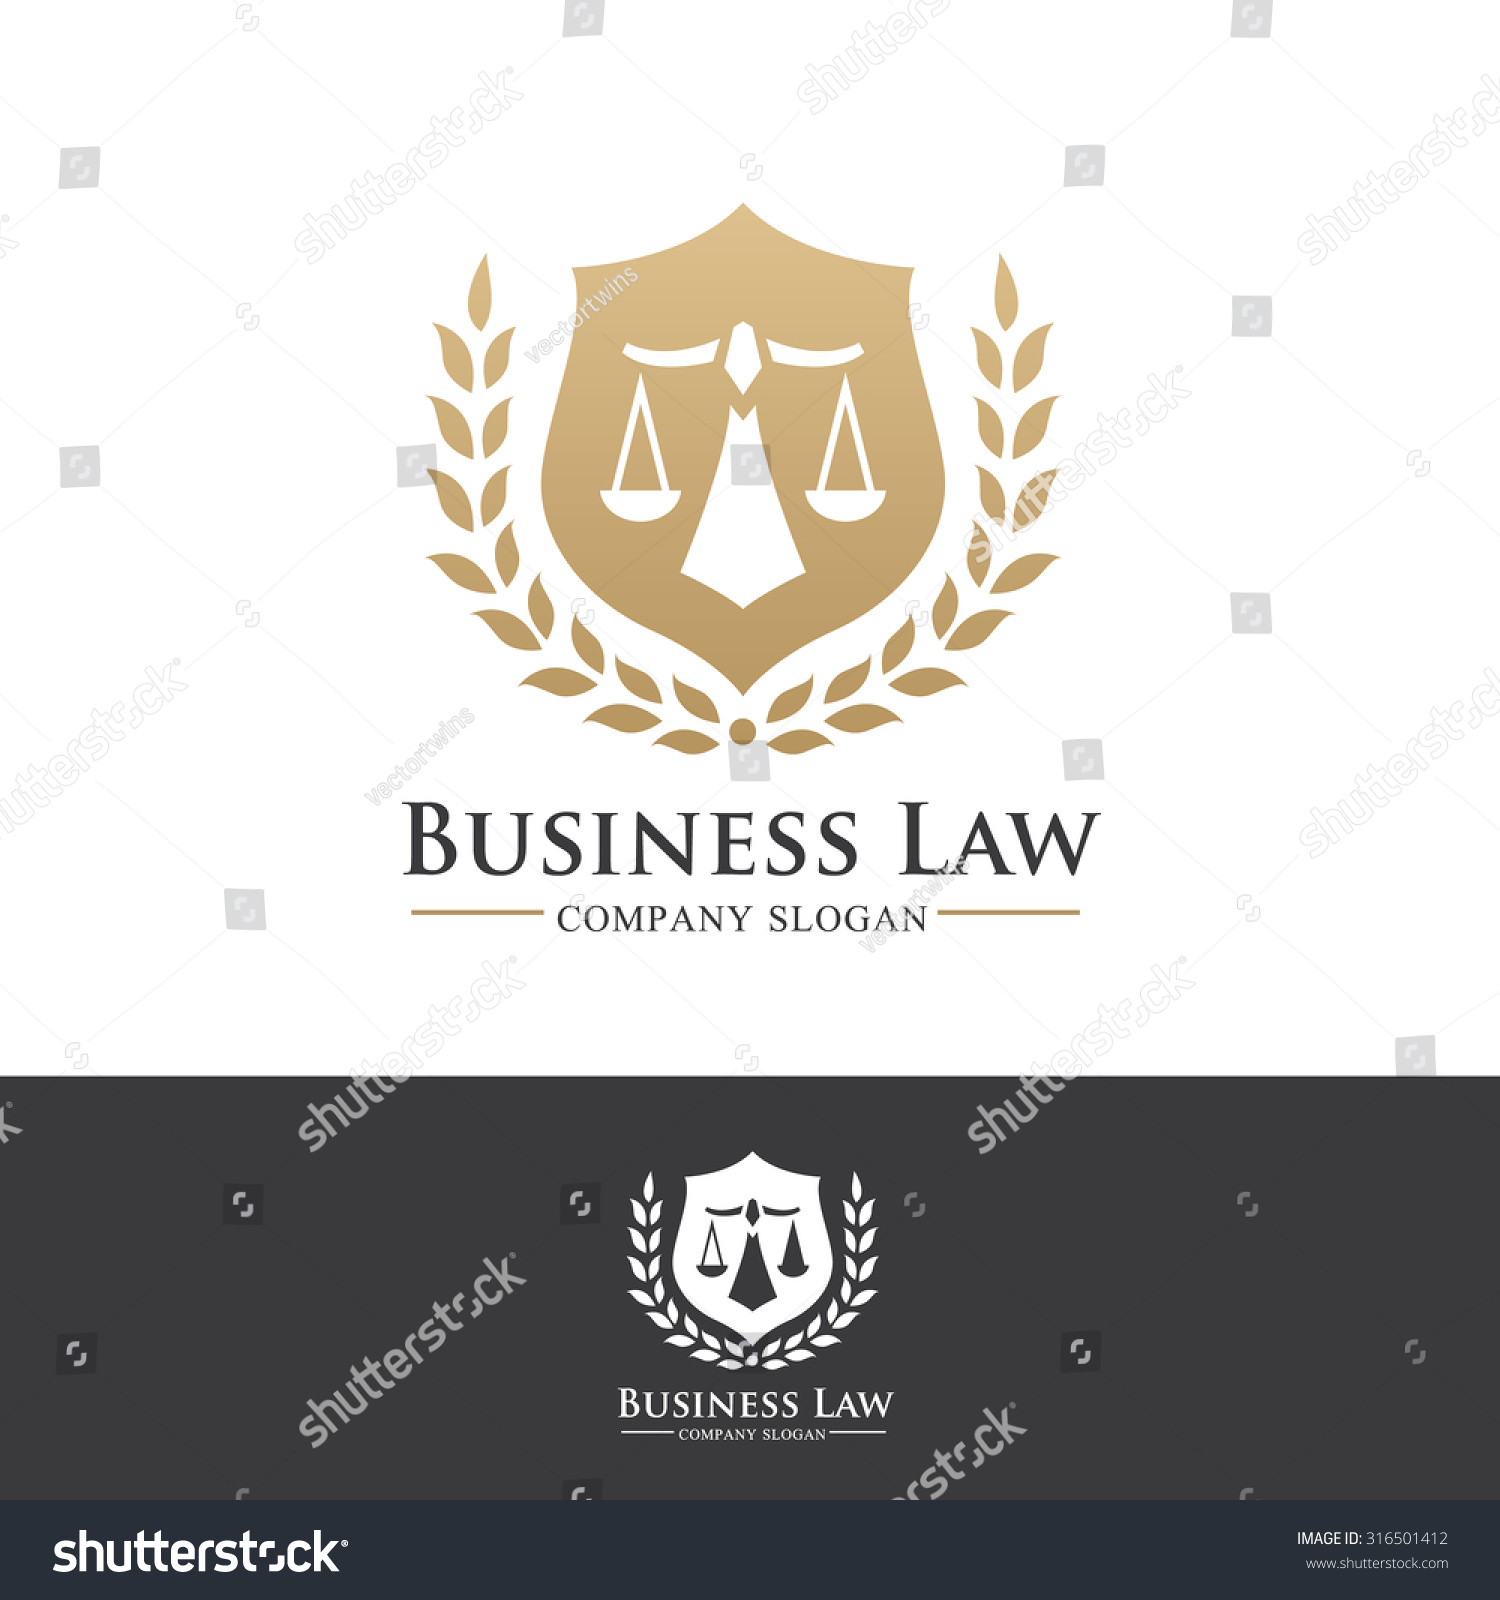 lawyer vector - photo #45